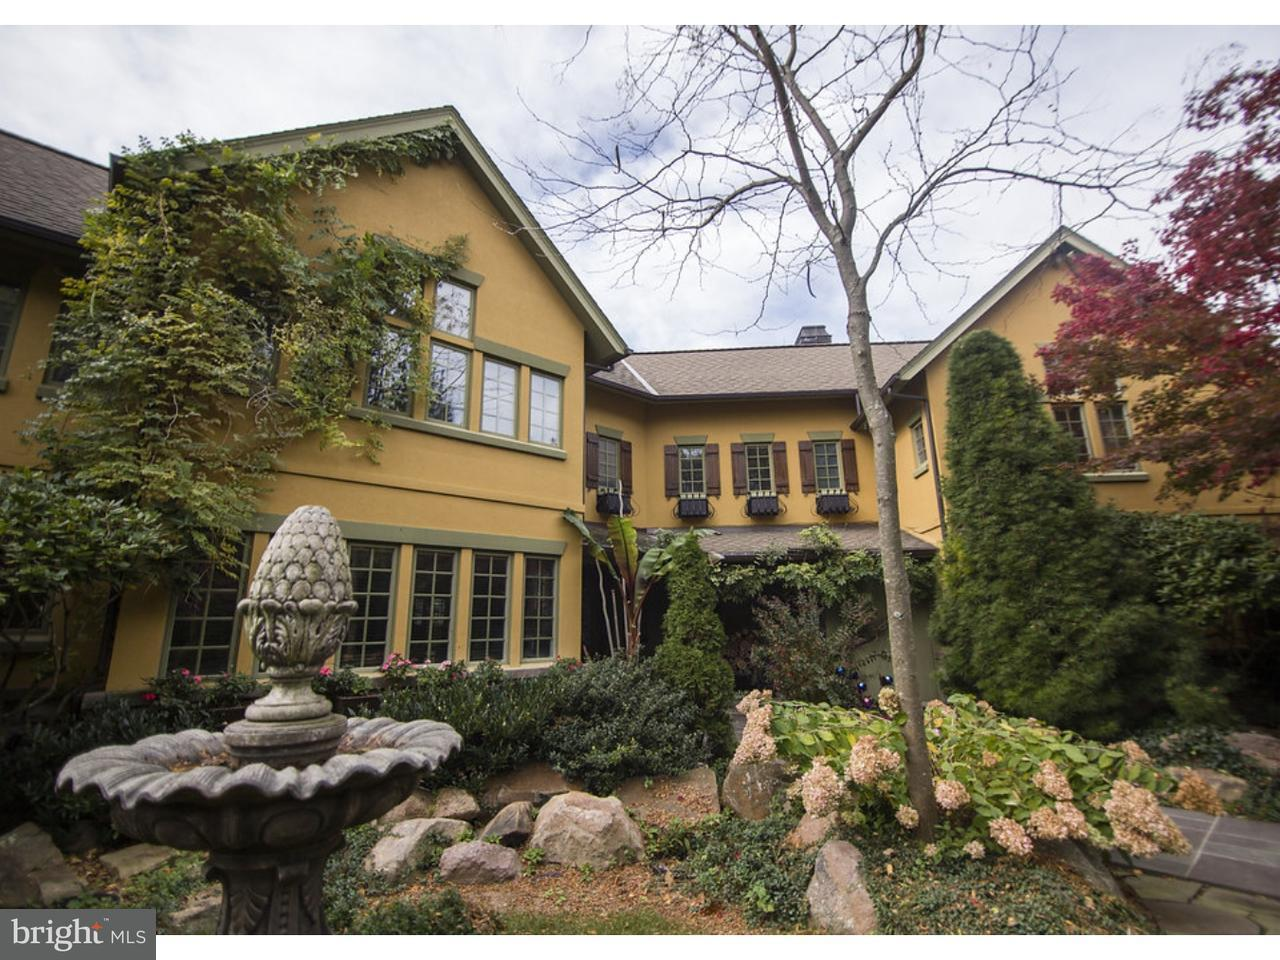 Single Family Home for Sale at 176 MAPLE GROVE Road Mohnton, Pennsylvania 19540 United States